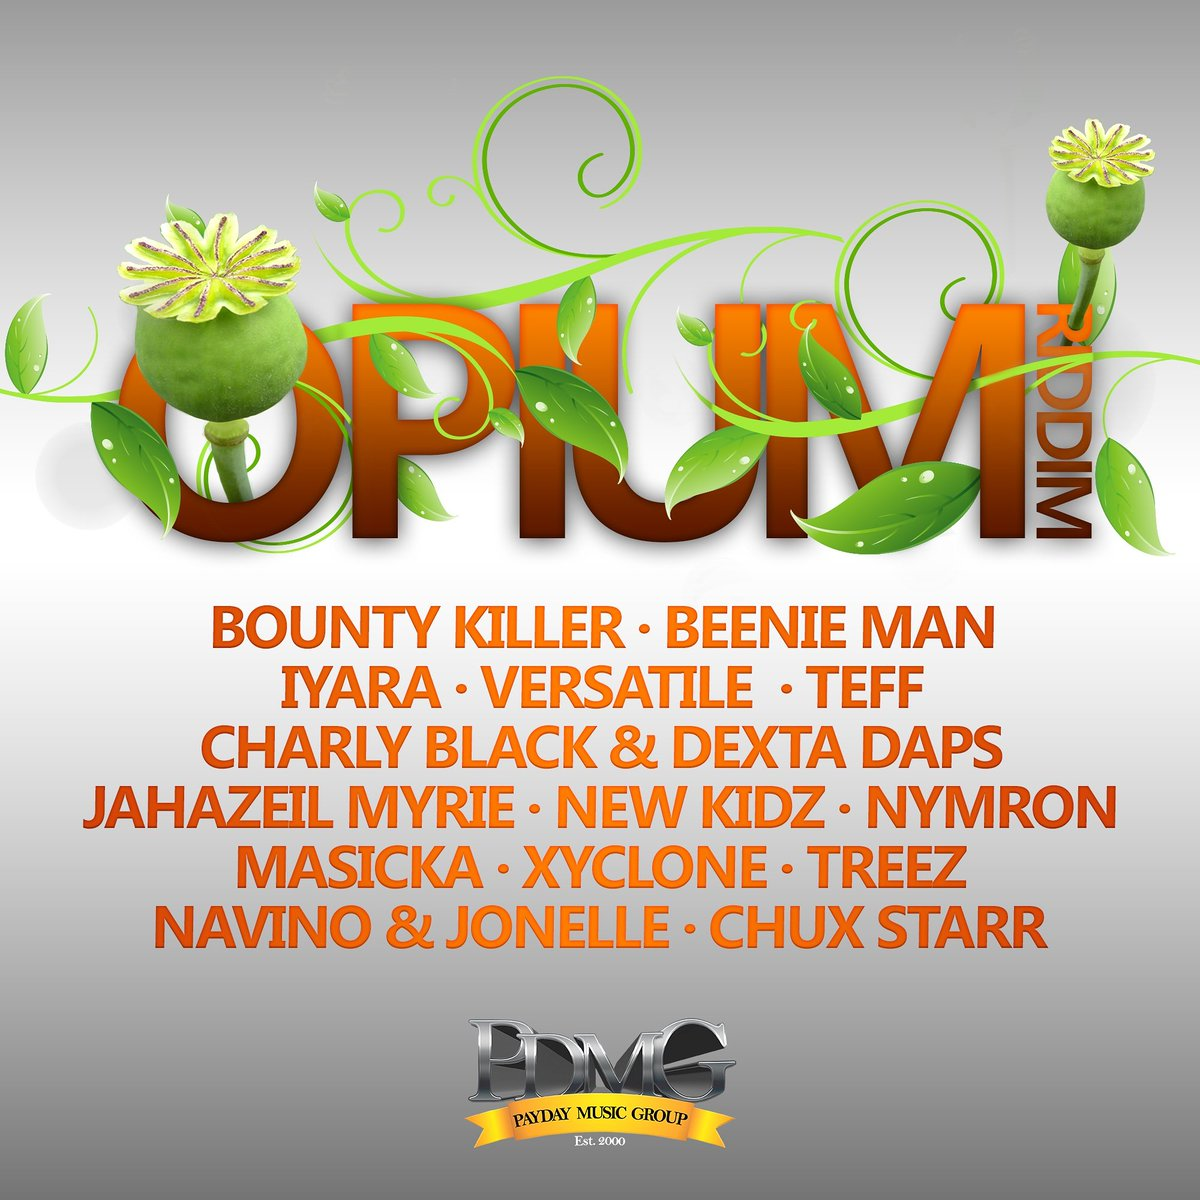 Opium Riddim is available on #iTunes  this riddim ft @grunggaadzilla buy https://t.co/7Yrot2sjQy­riddim/id981284138 https://t.co/uKRja854si